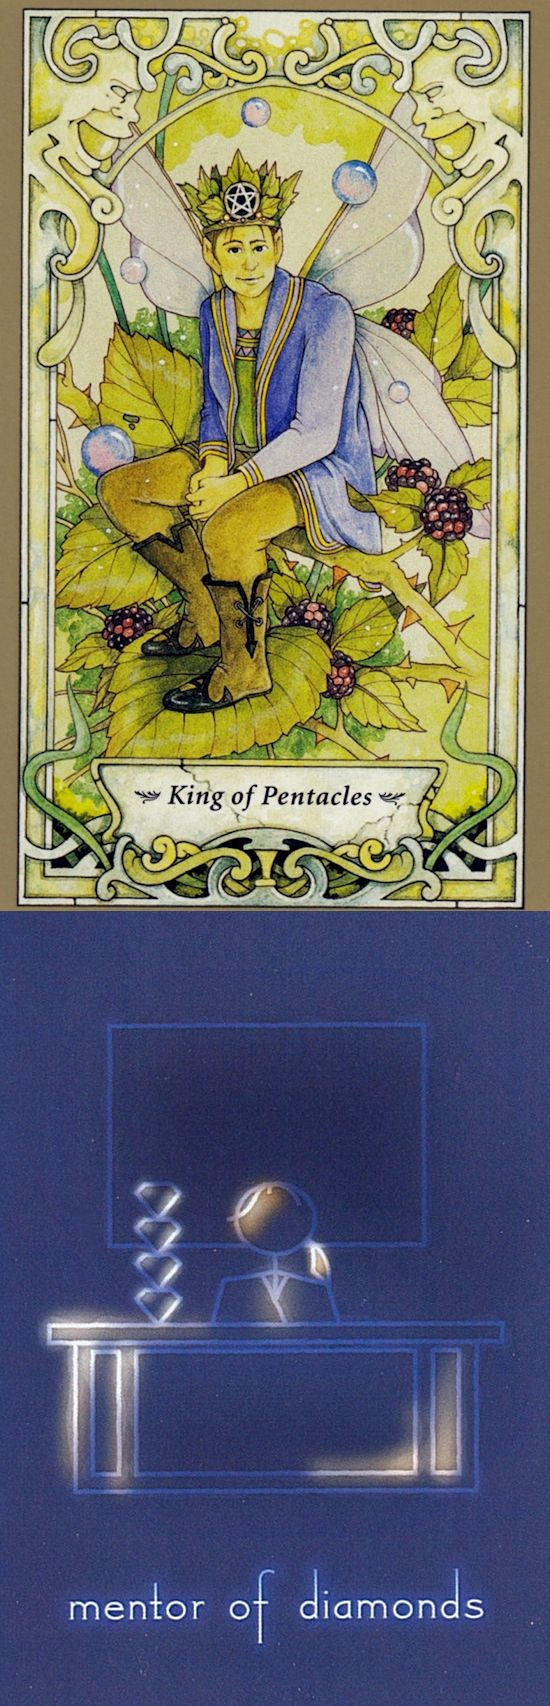 King of Pentacles: financial success and infinite desire for more things (reverse). Mystic Faerie Tarot deck and Celestial Stick Tarot deck: tarotvoodoo, free physic reading and tarotdeck. Best 2018 pagan and oracles of fire bryan davis. #hierophant #ritual #chariot #temperance #intuition #minorarcana